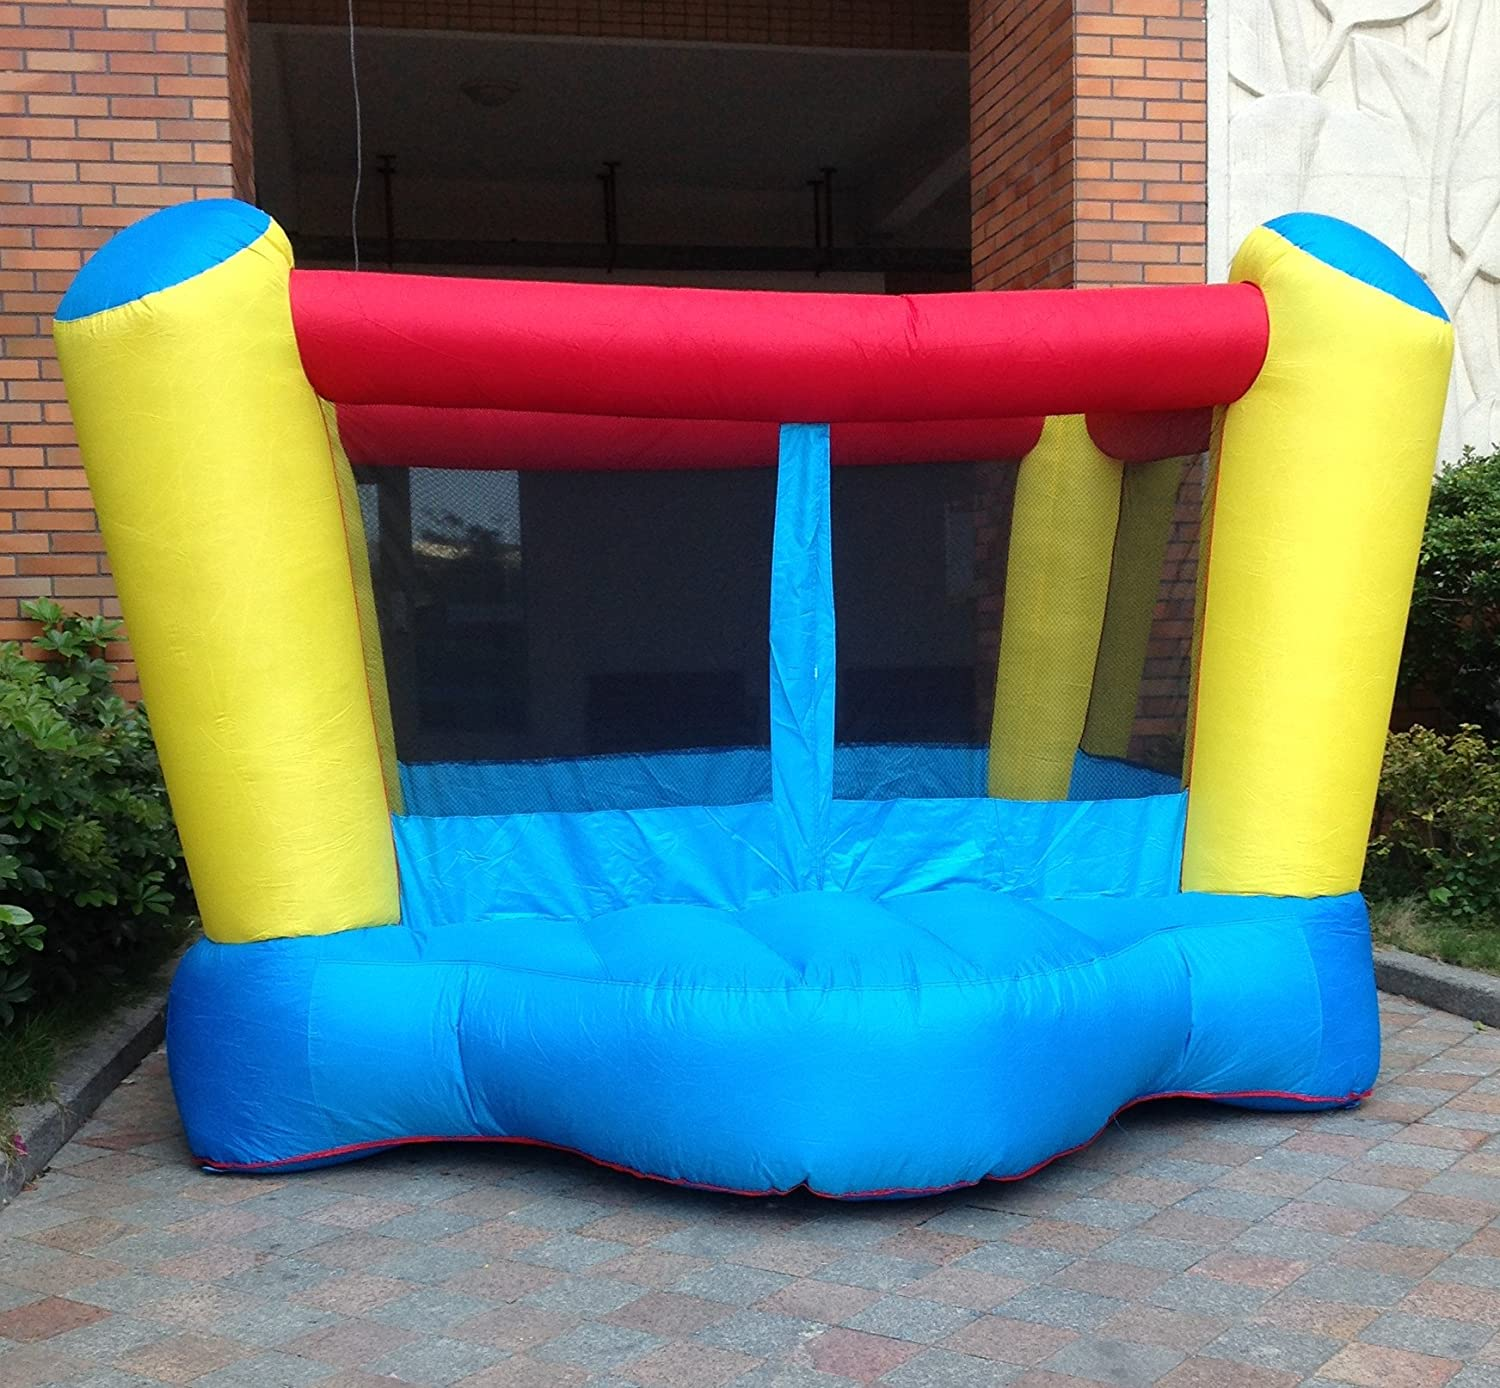 Jack Inflatable nylon inflatable bouncer inflatable castle inflatable bounce castle inflatable bounce house with air blower online kaufen